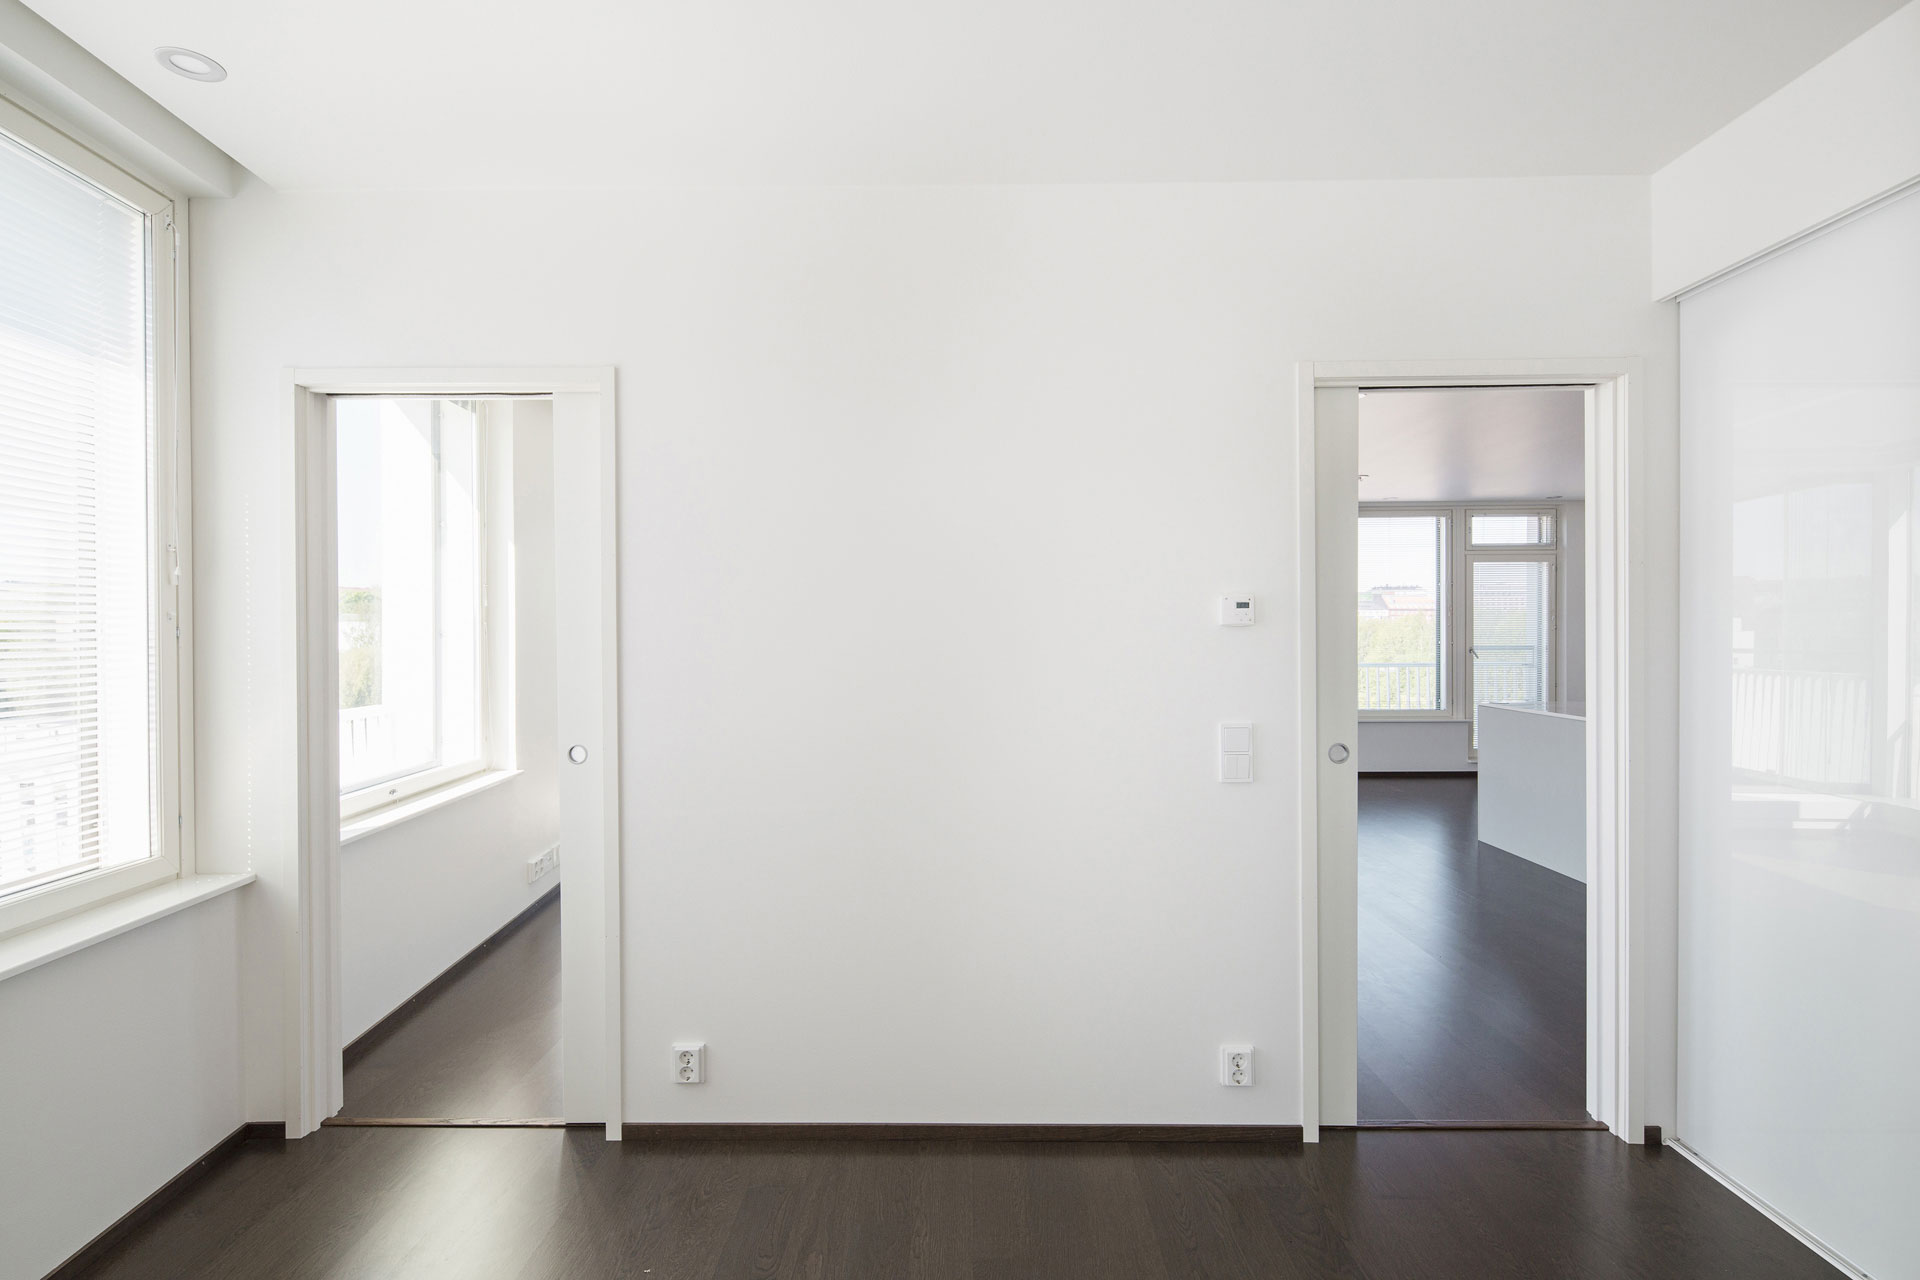 Pocket Doors - Pocket Doors. Same Space, More Room Pocket Doors on